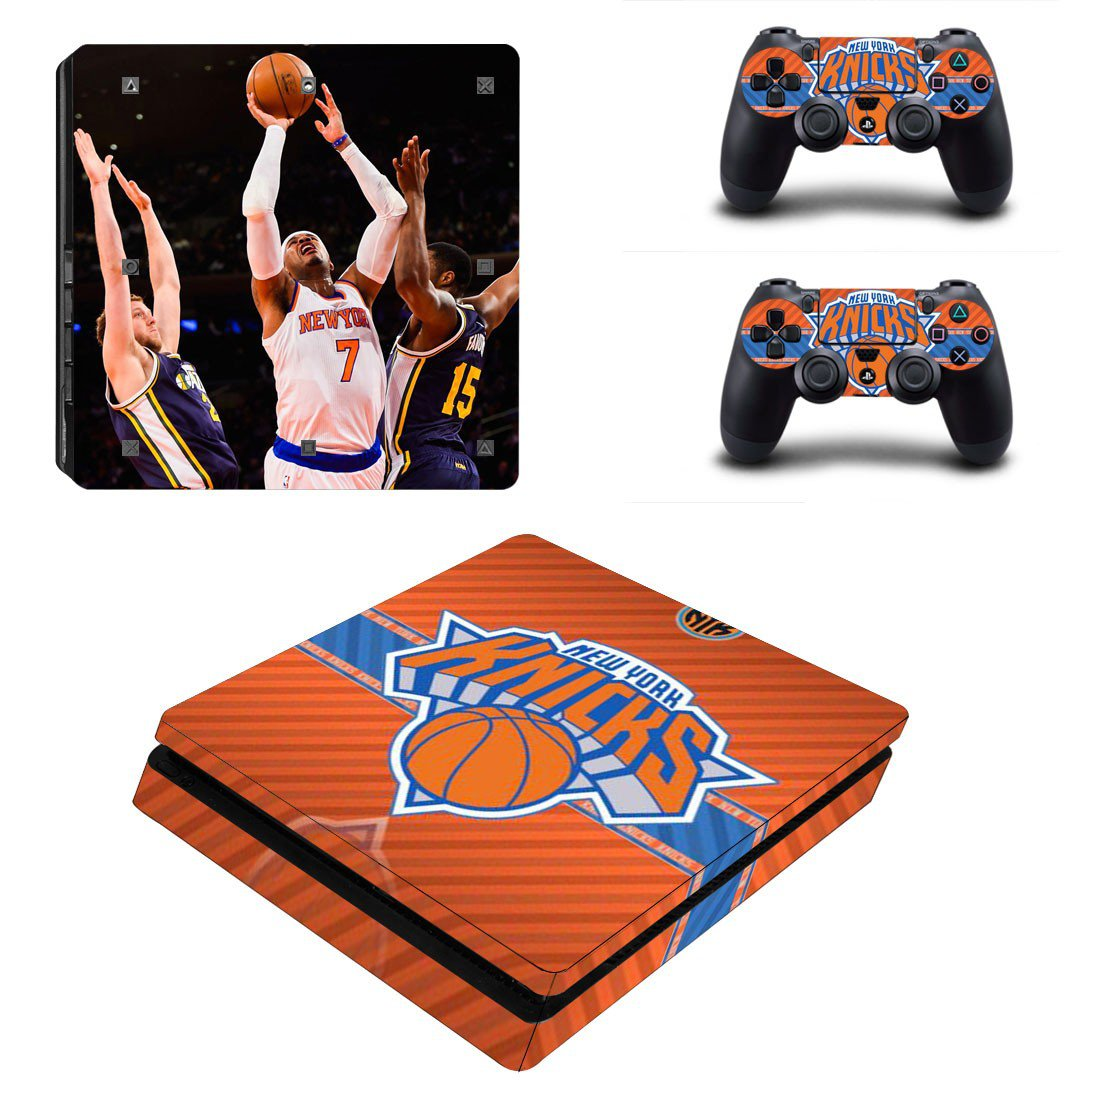 New York Knicks Play Station 4 slim skin decal for console and 2 controllers